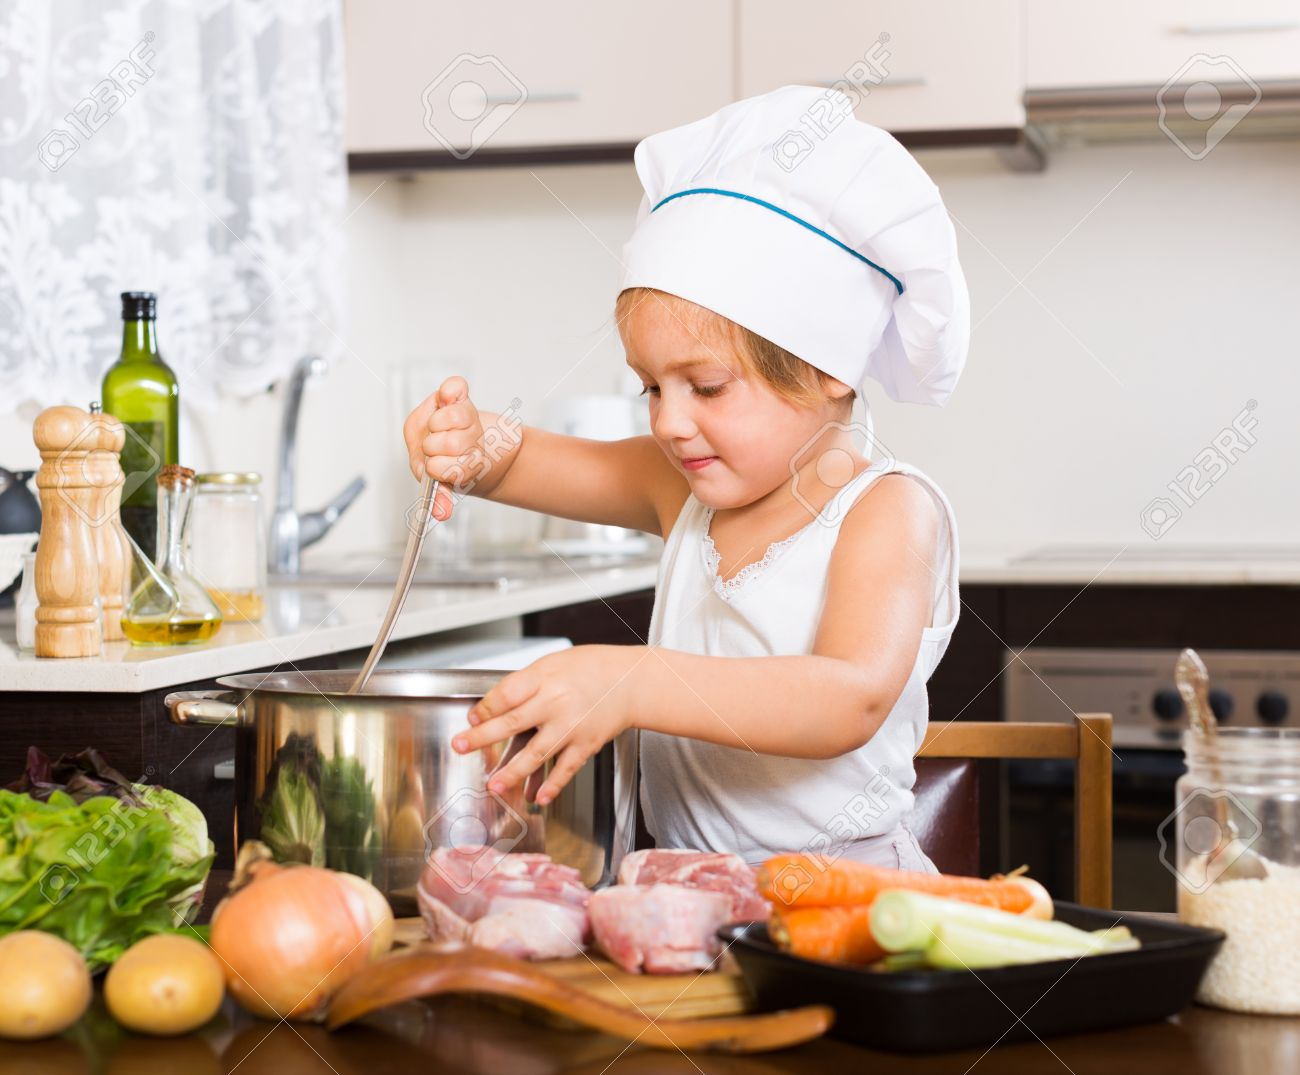 Home Kitchen Cooking cute baby girl in chef's hat cooking food at home kitchen stock